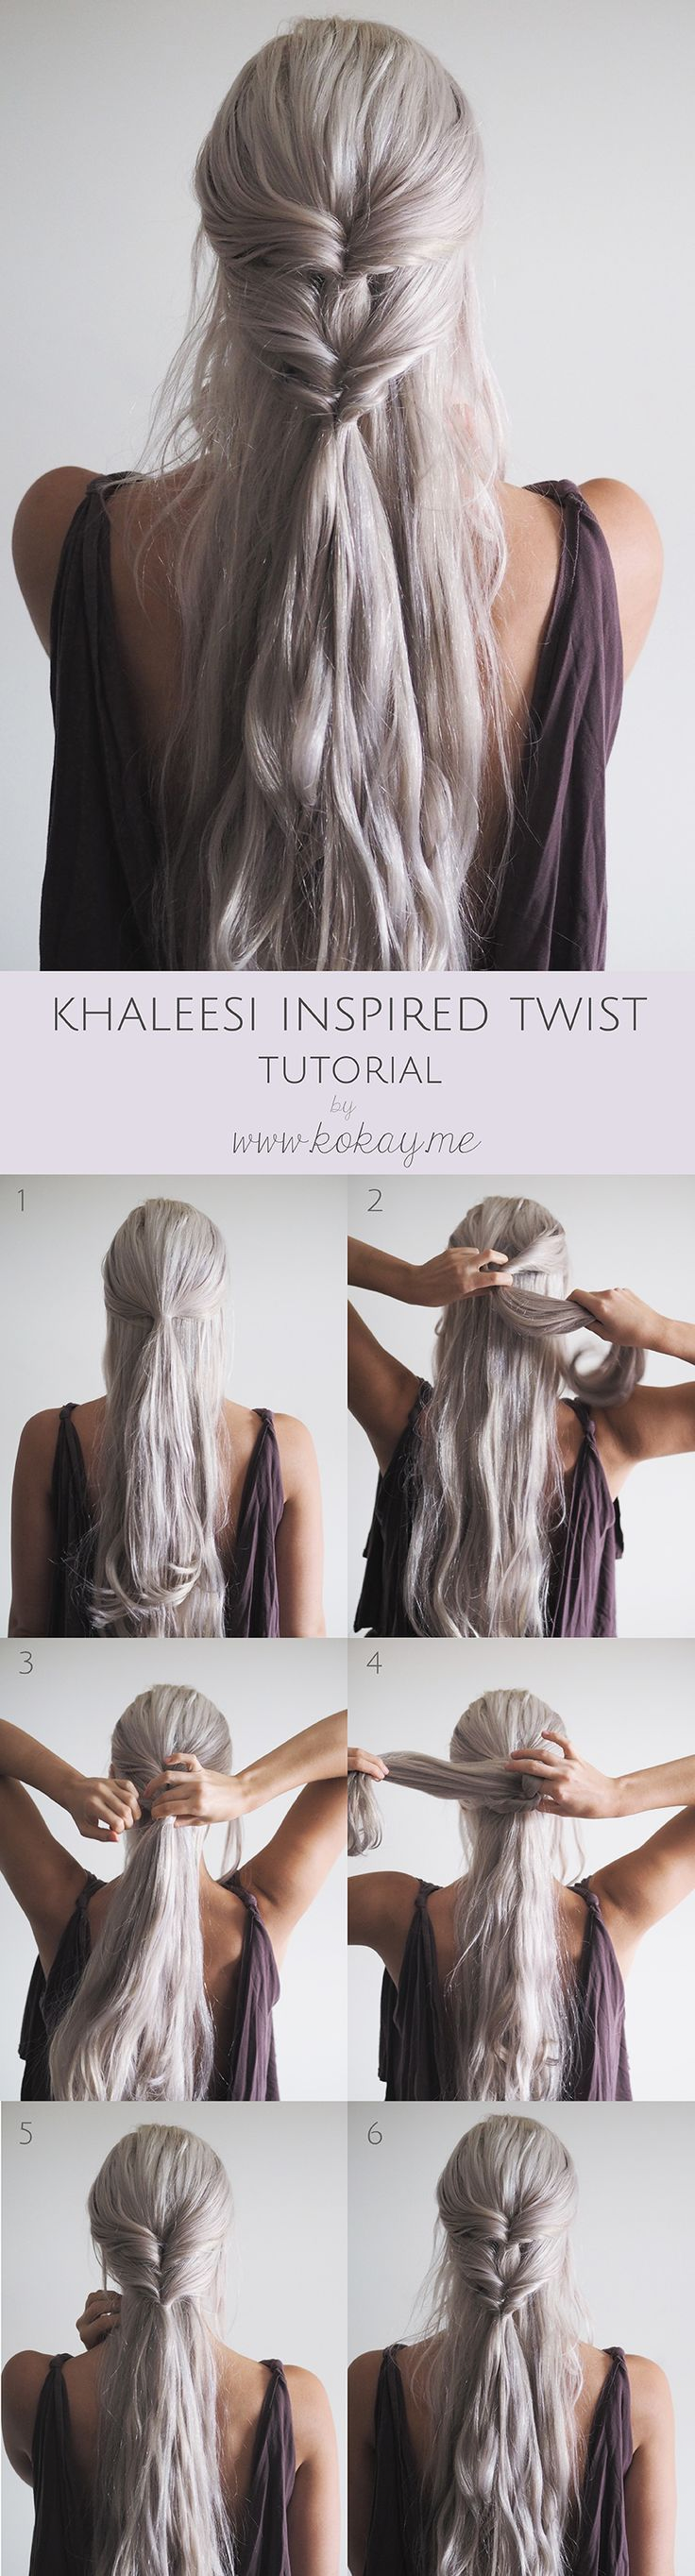 Hairstyle Tutorials 32 amazing and easy hairstyles tutorials for hot summer days 15 Hair Tutorials To Style Your Hair